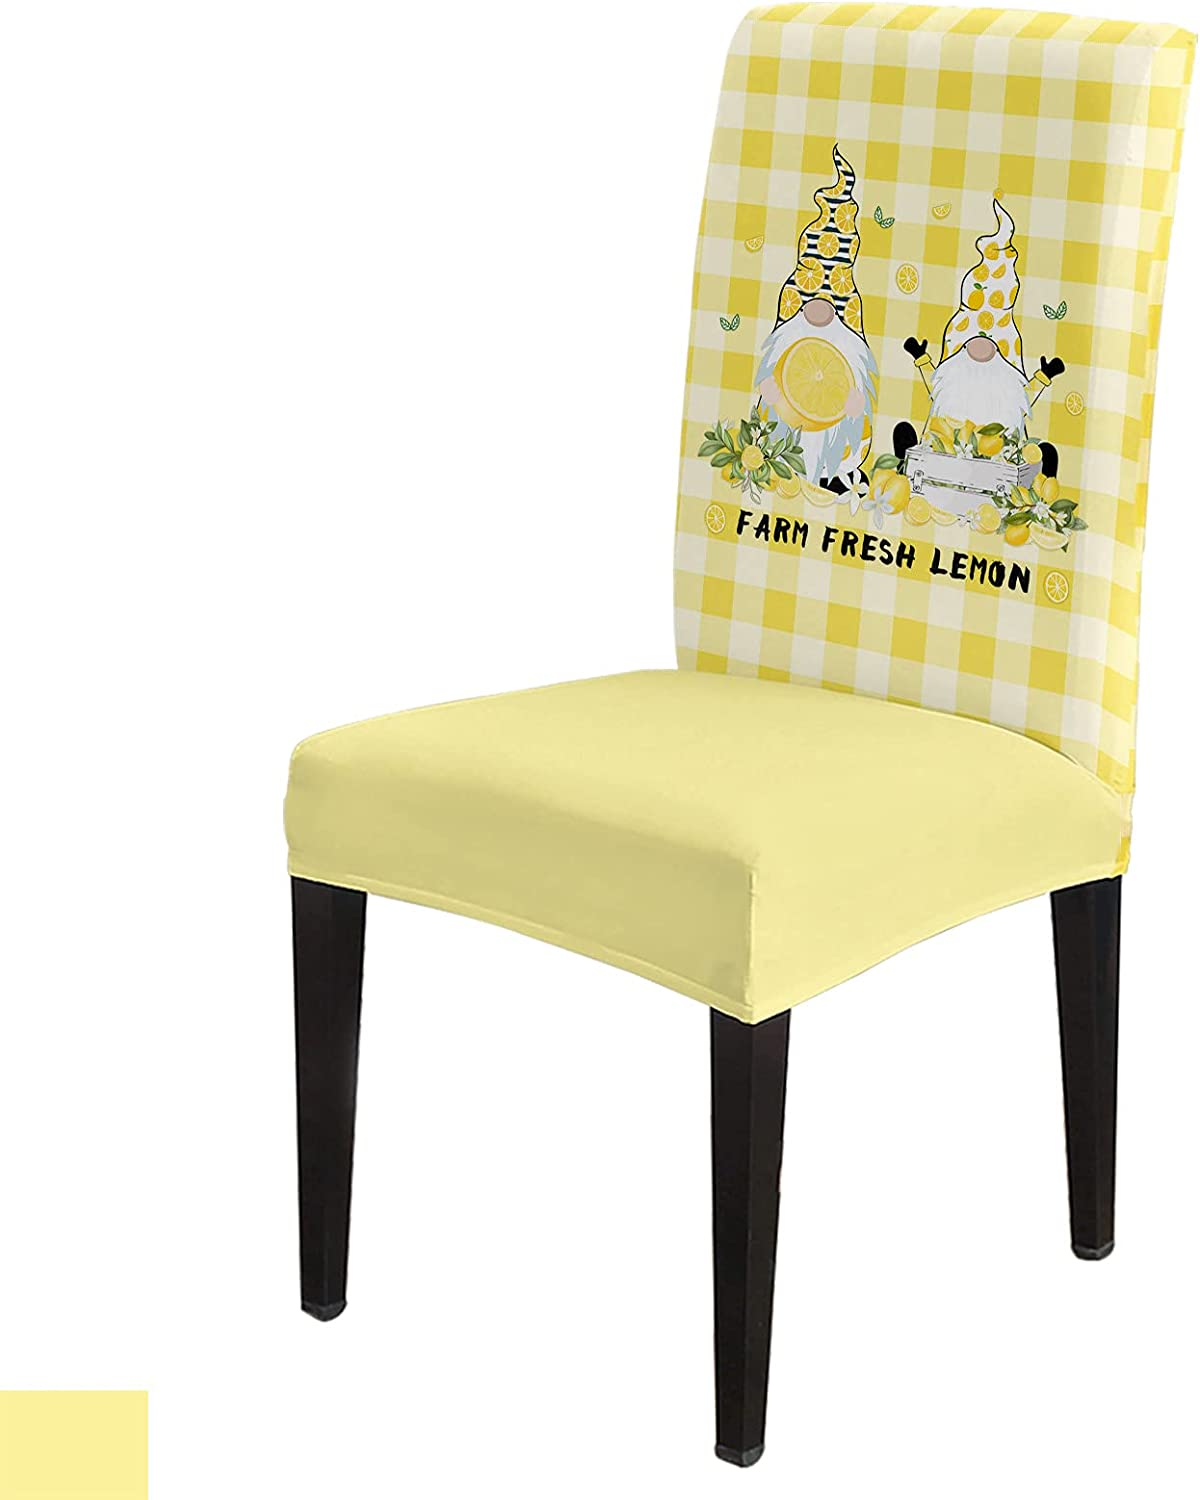 8 Per Surprise price Max 46% OFF Set Summer Lemon Gnome Dining Fresh for Chair Covers Room